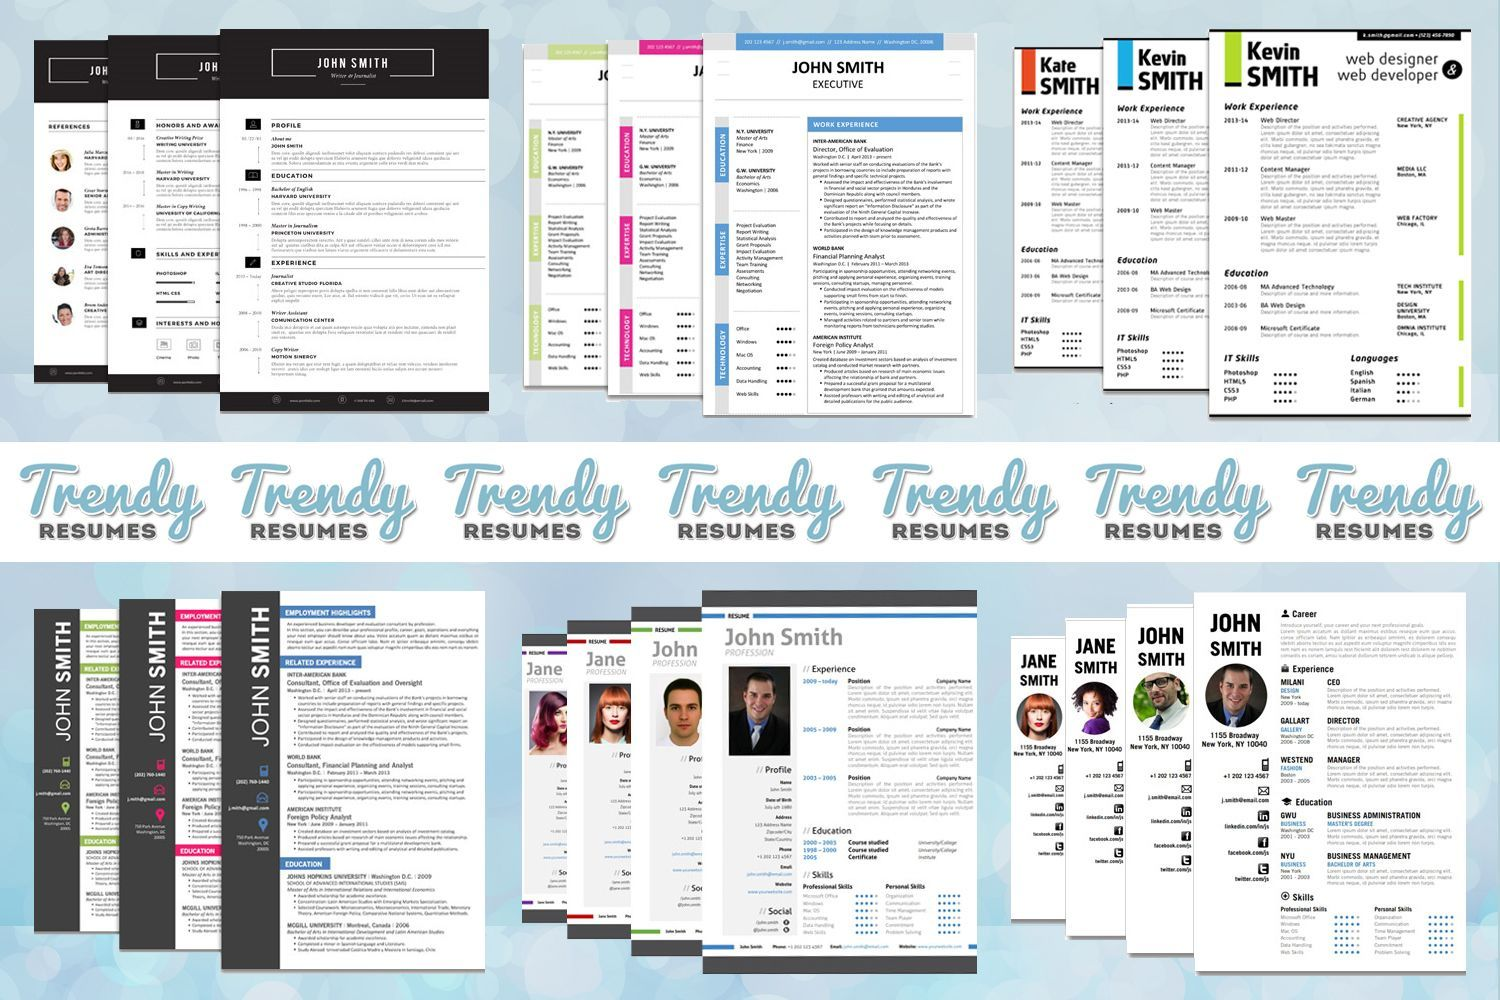 Professional, modern, creative resume templates for